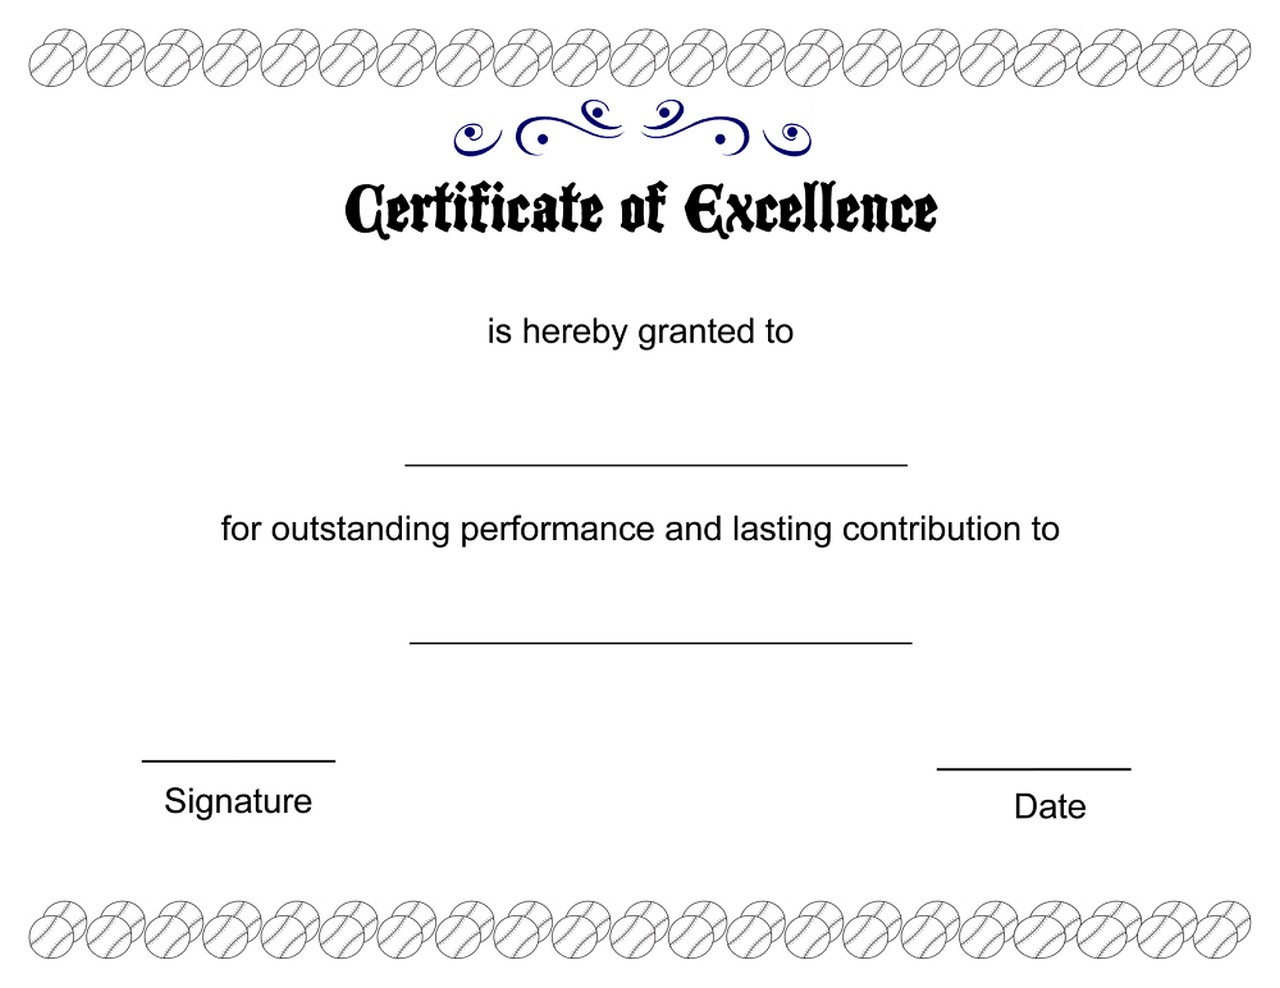 certificate of excellence printable image